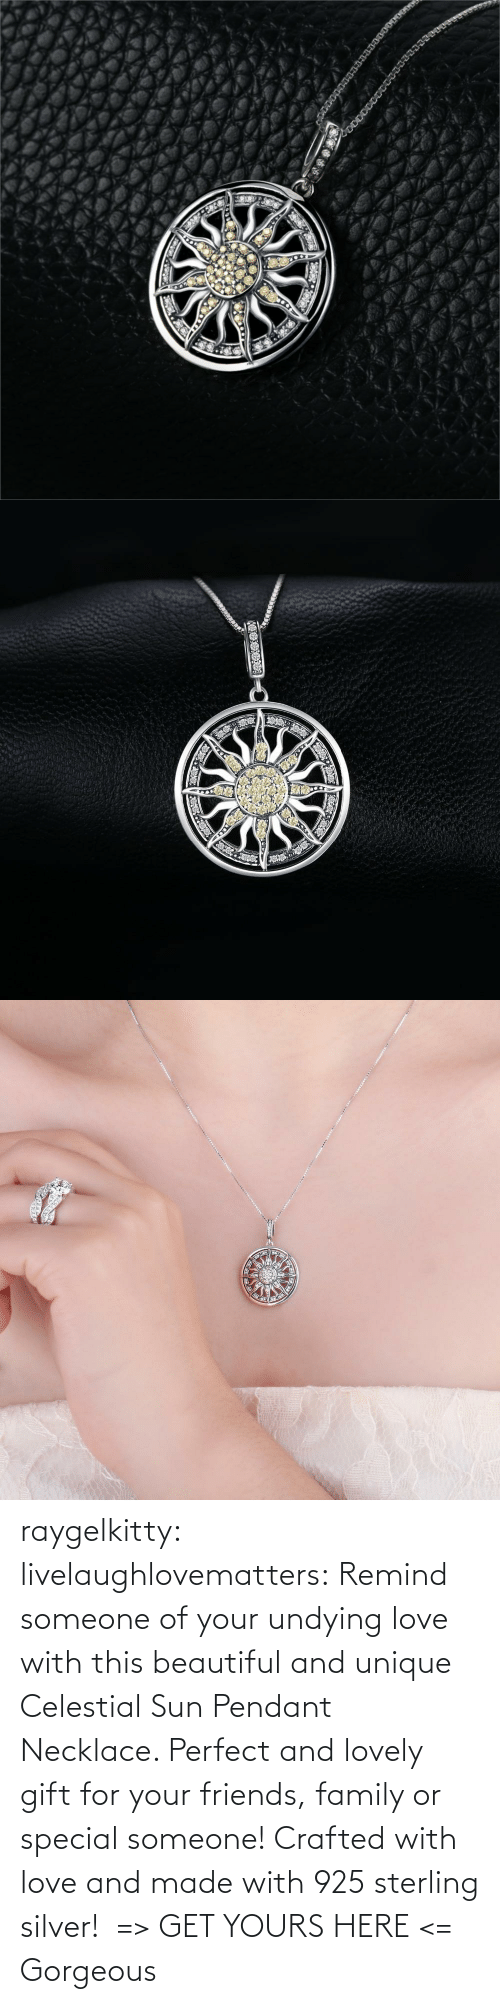 beautiful: raygelkitty:  livelaughlovematters: Remind someone of your undying love with this beautiful and unique Celestial Sun Pendant Necklace. Perfect and lovely gift for your friends, family or special someone! Crafted with love and made with 925 sterling silver!  => GET YOURS HERE <=    Gorgeous